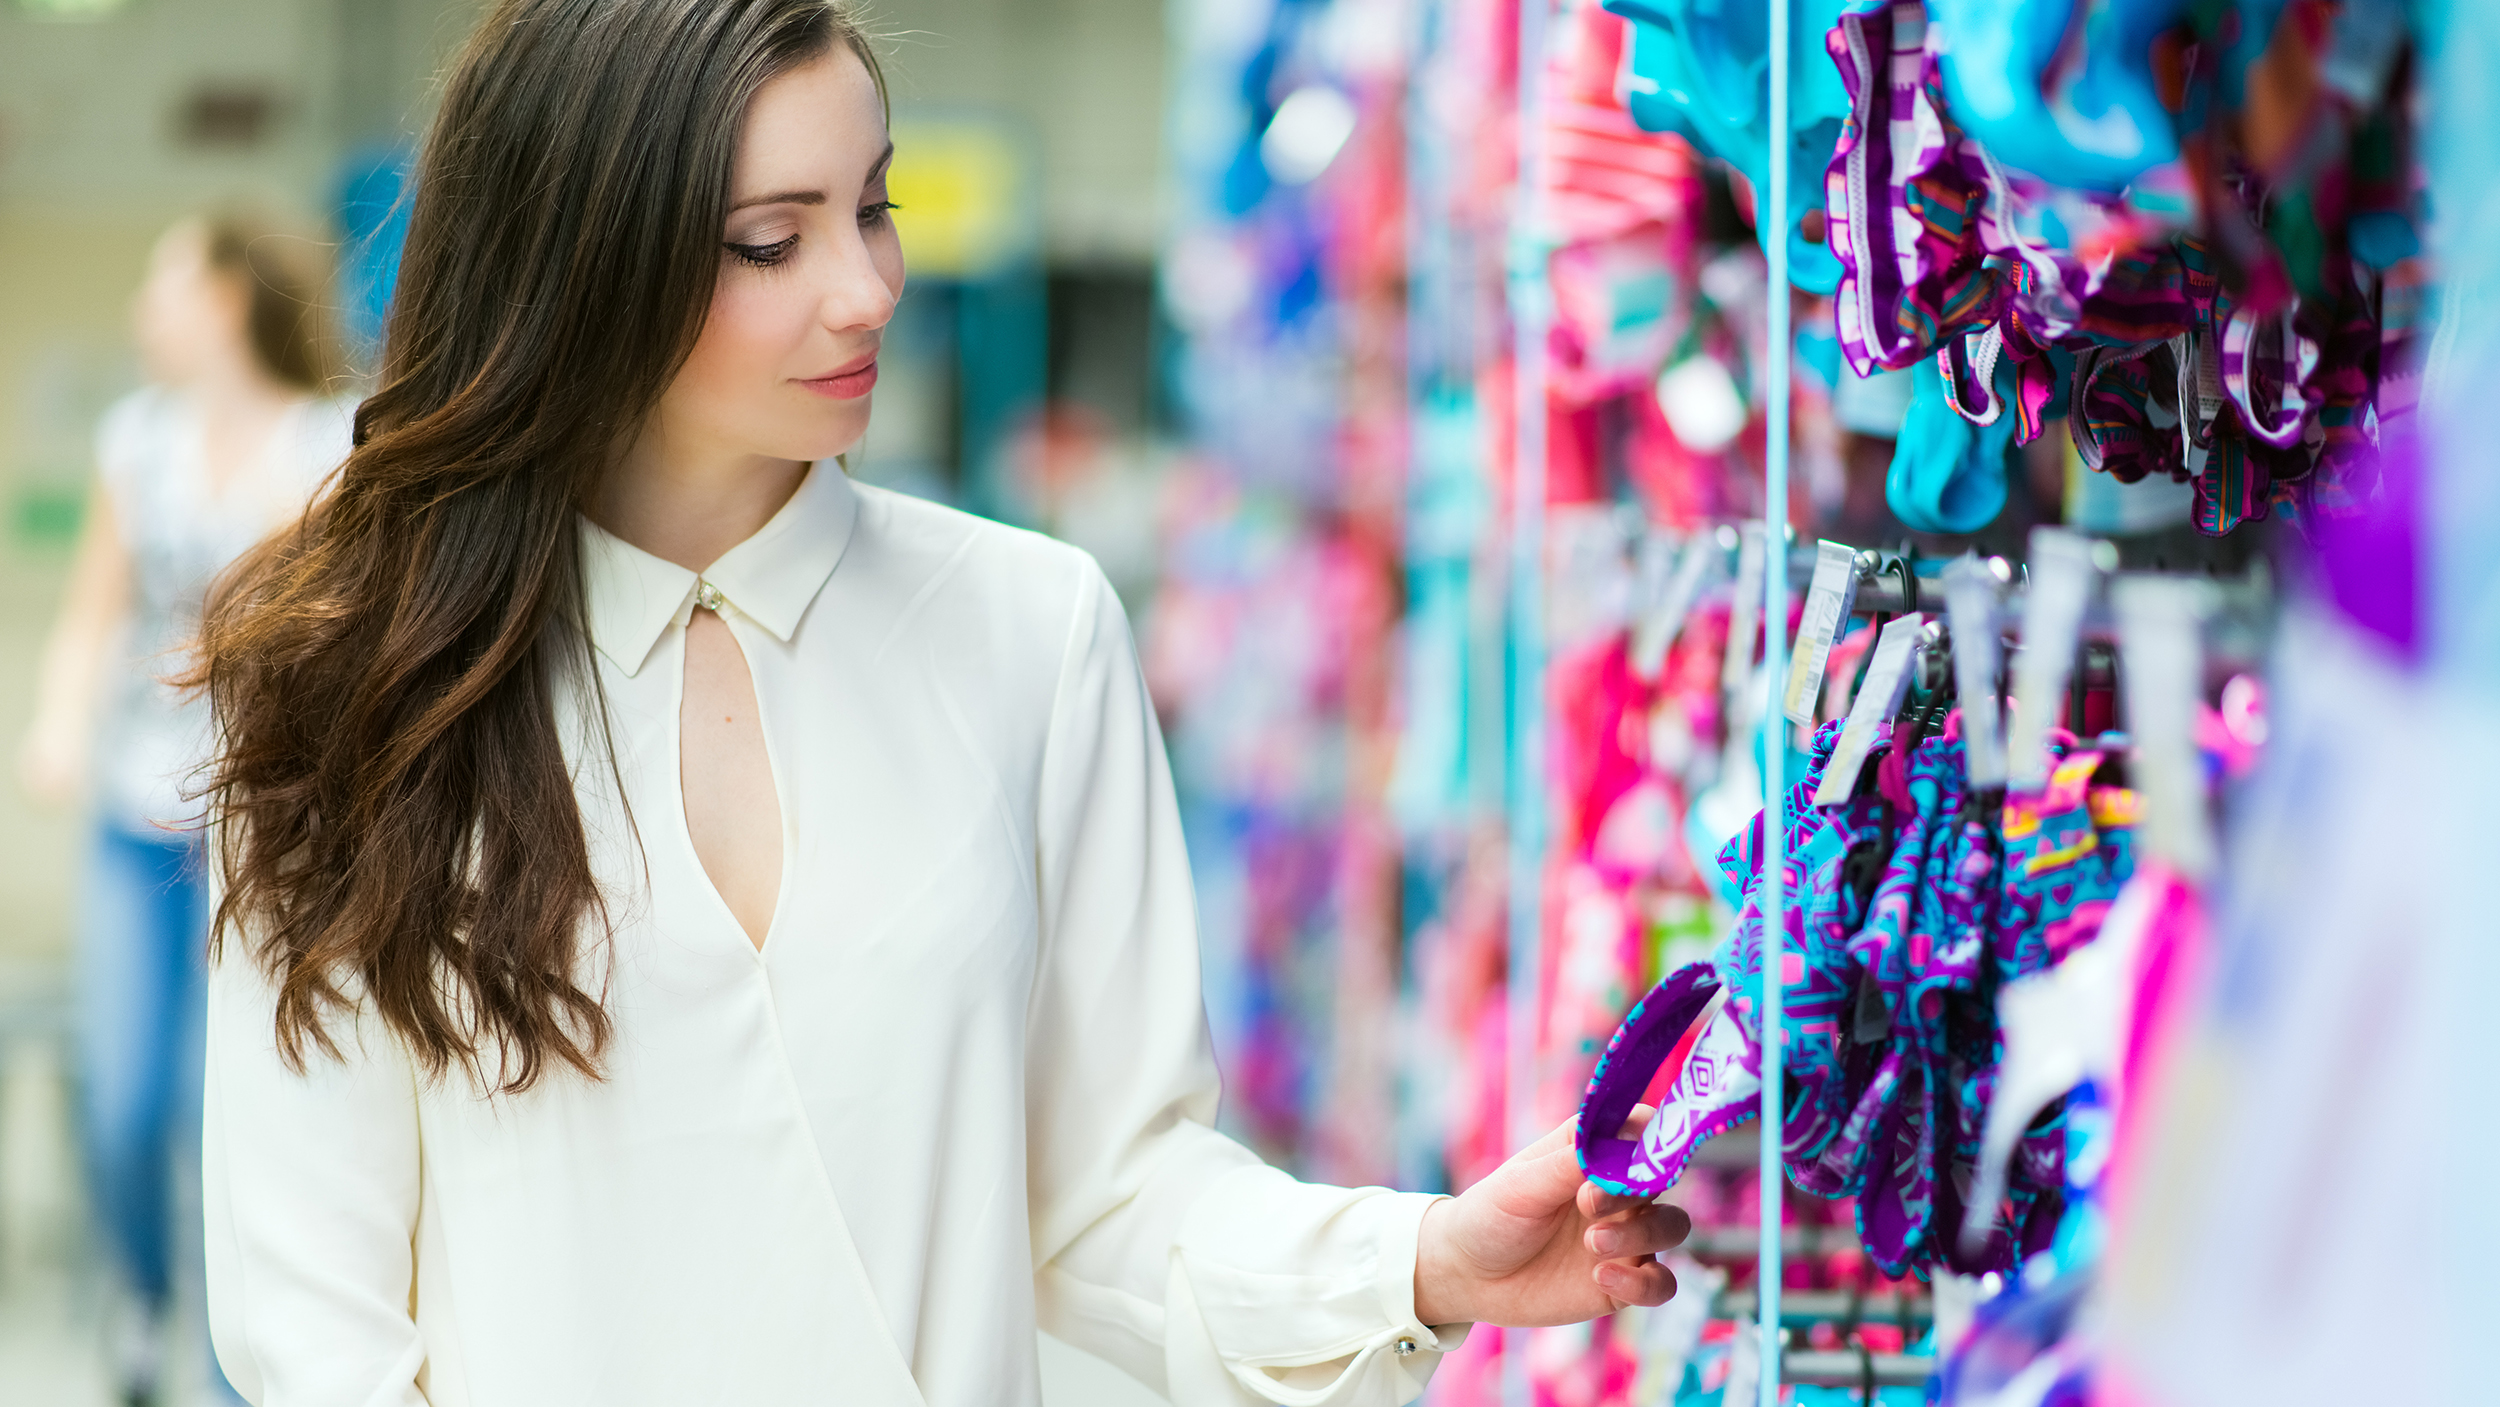 d4ac80e5e9554 Swimsuit shopping tips: How to shop for swimsuits